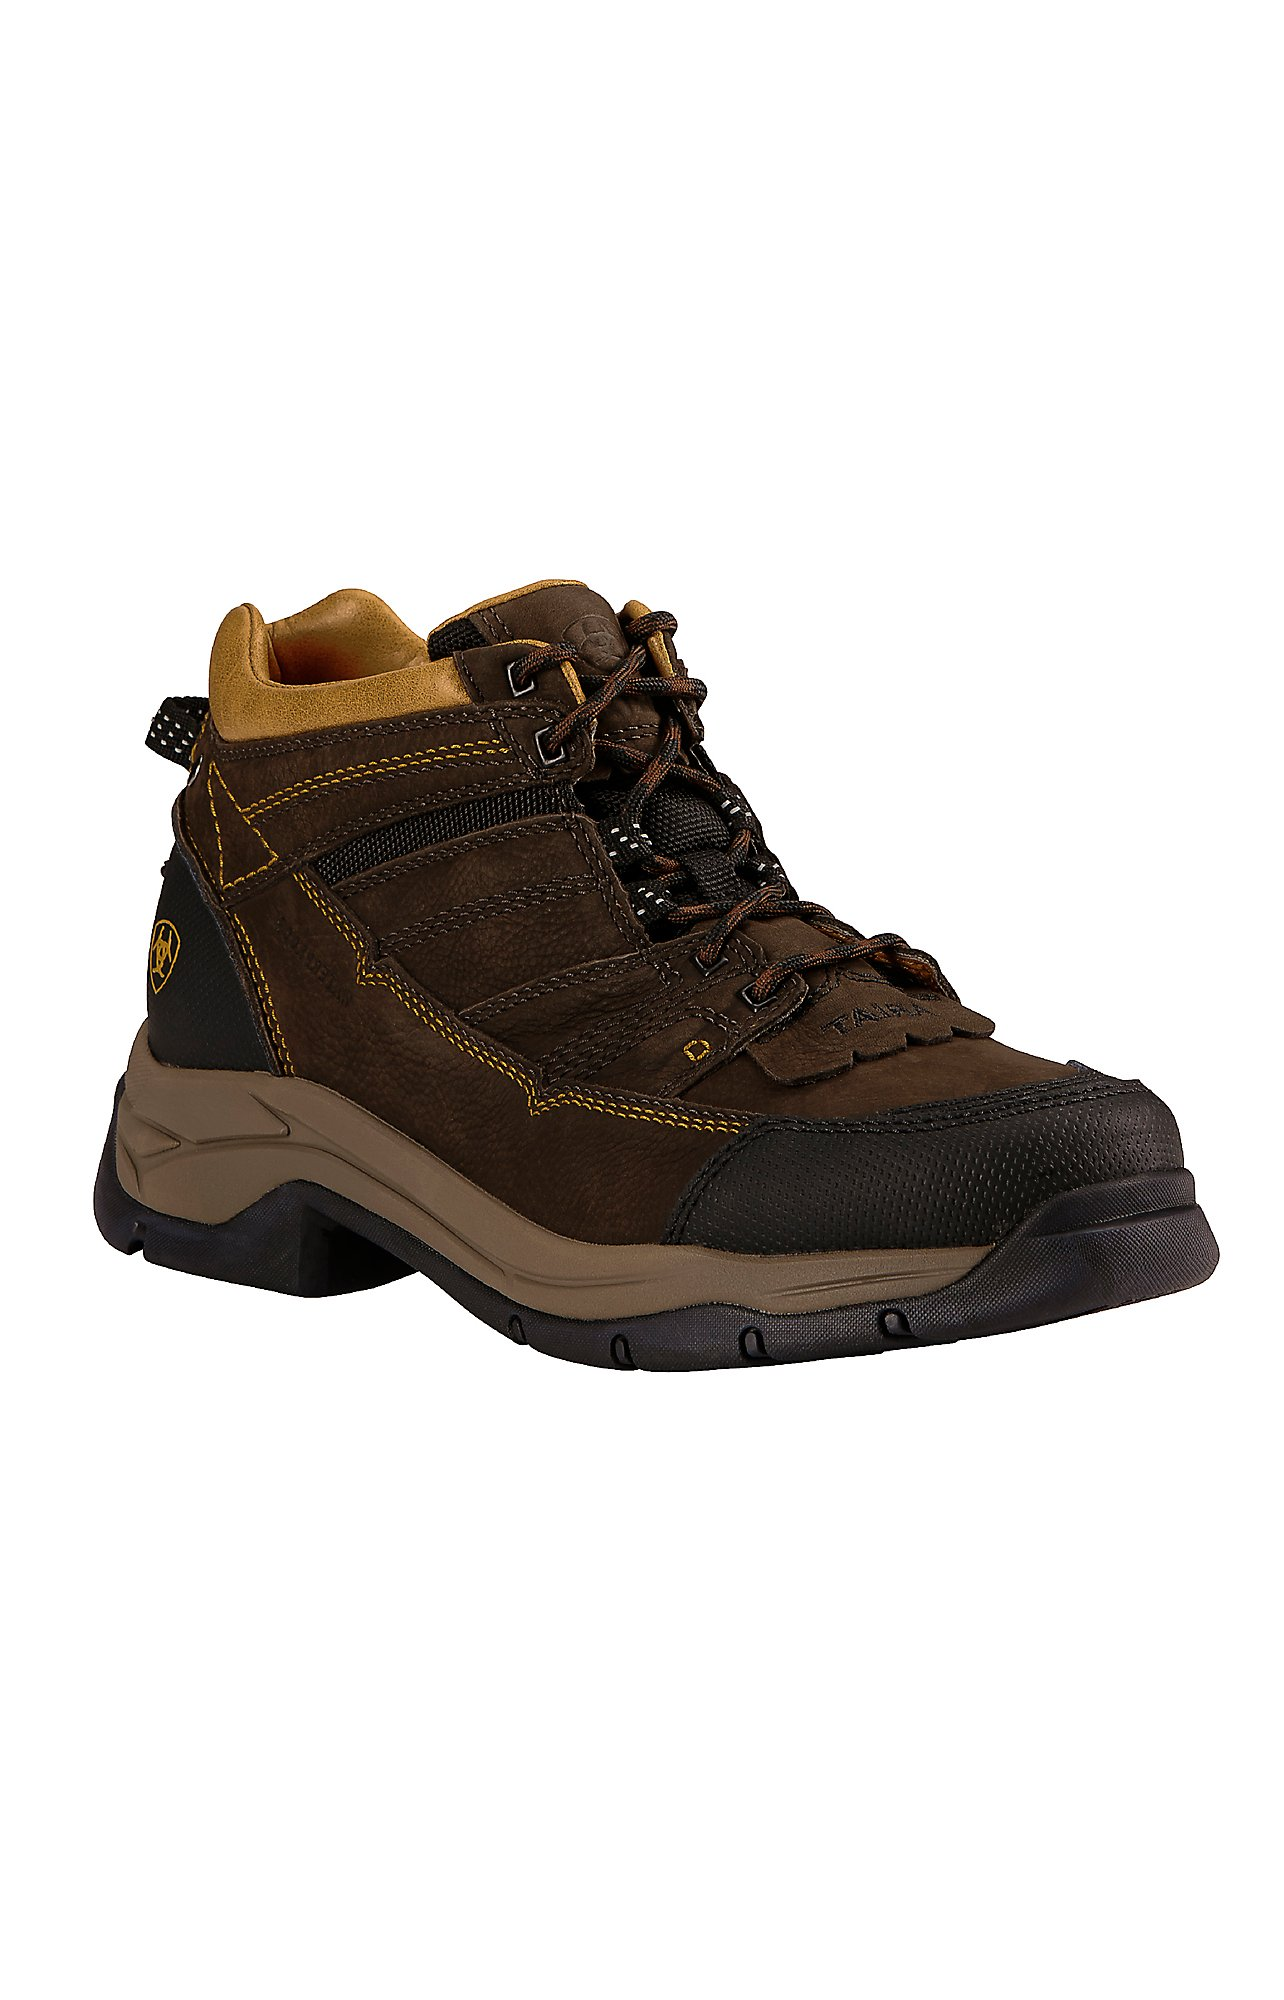 Ariat Men's Java Brown Terrain Pro H20 Waterproof Hiking Boots ...